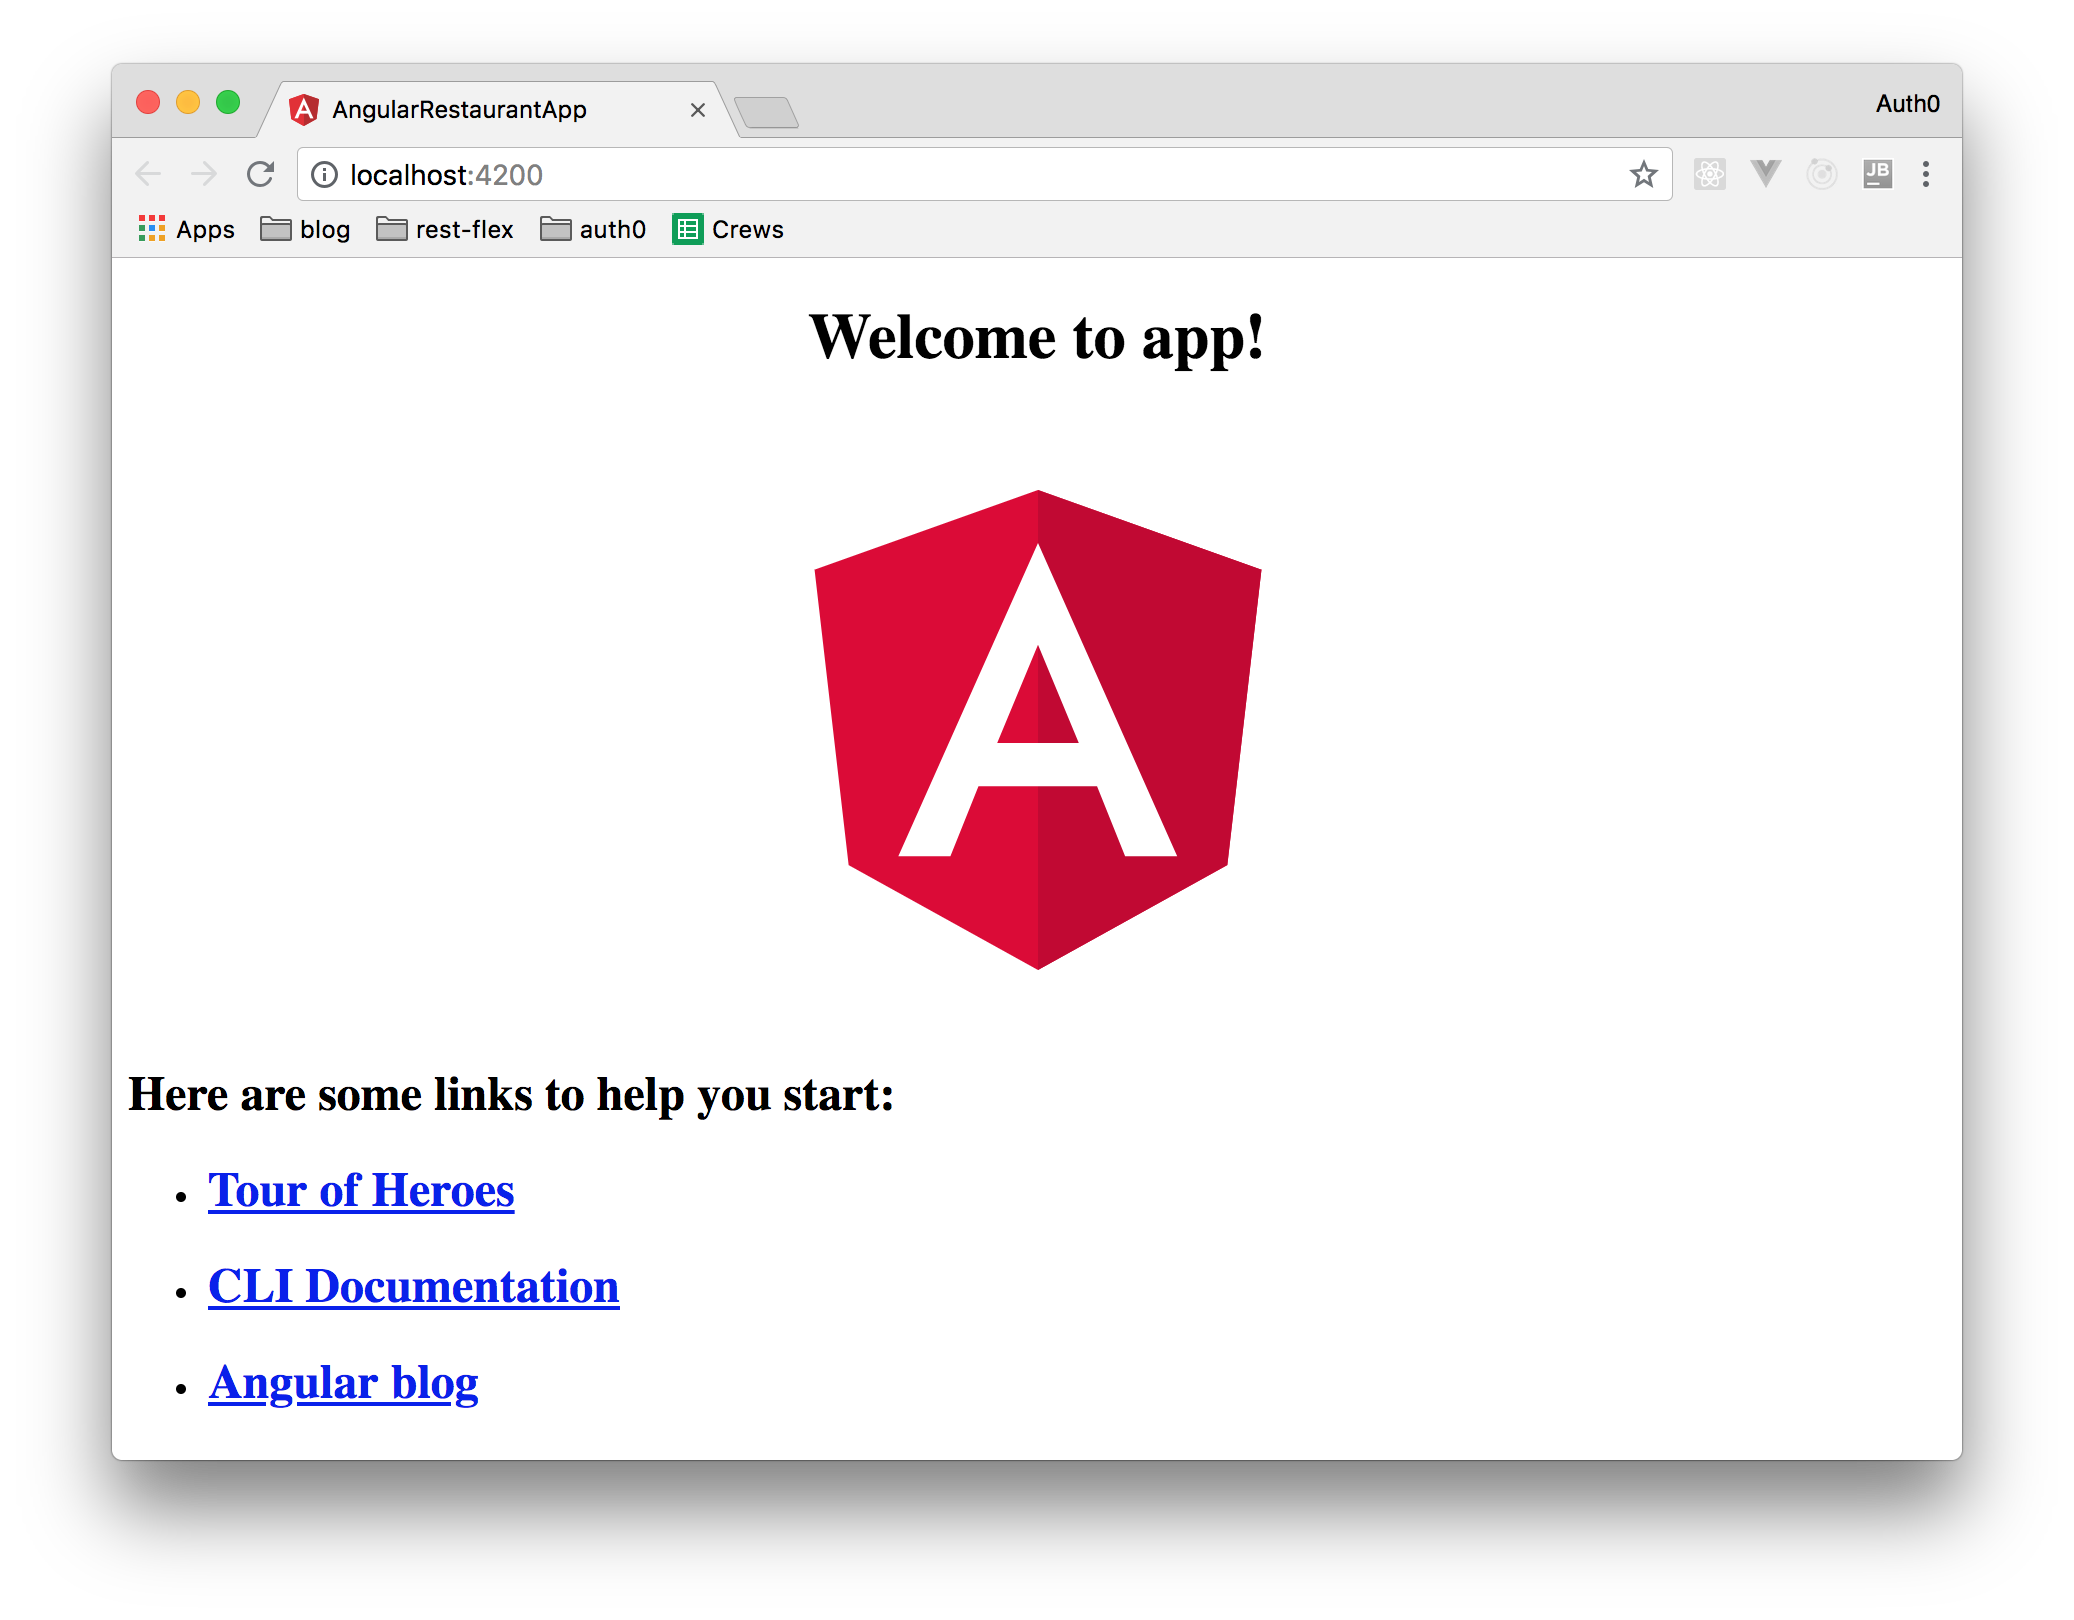 Scaffolding Angular app - the welcome page